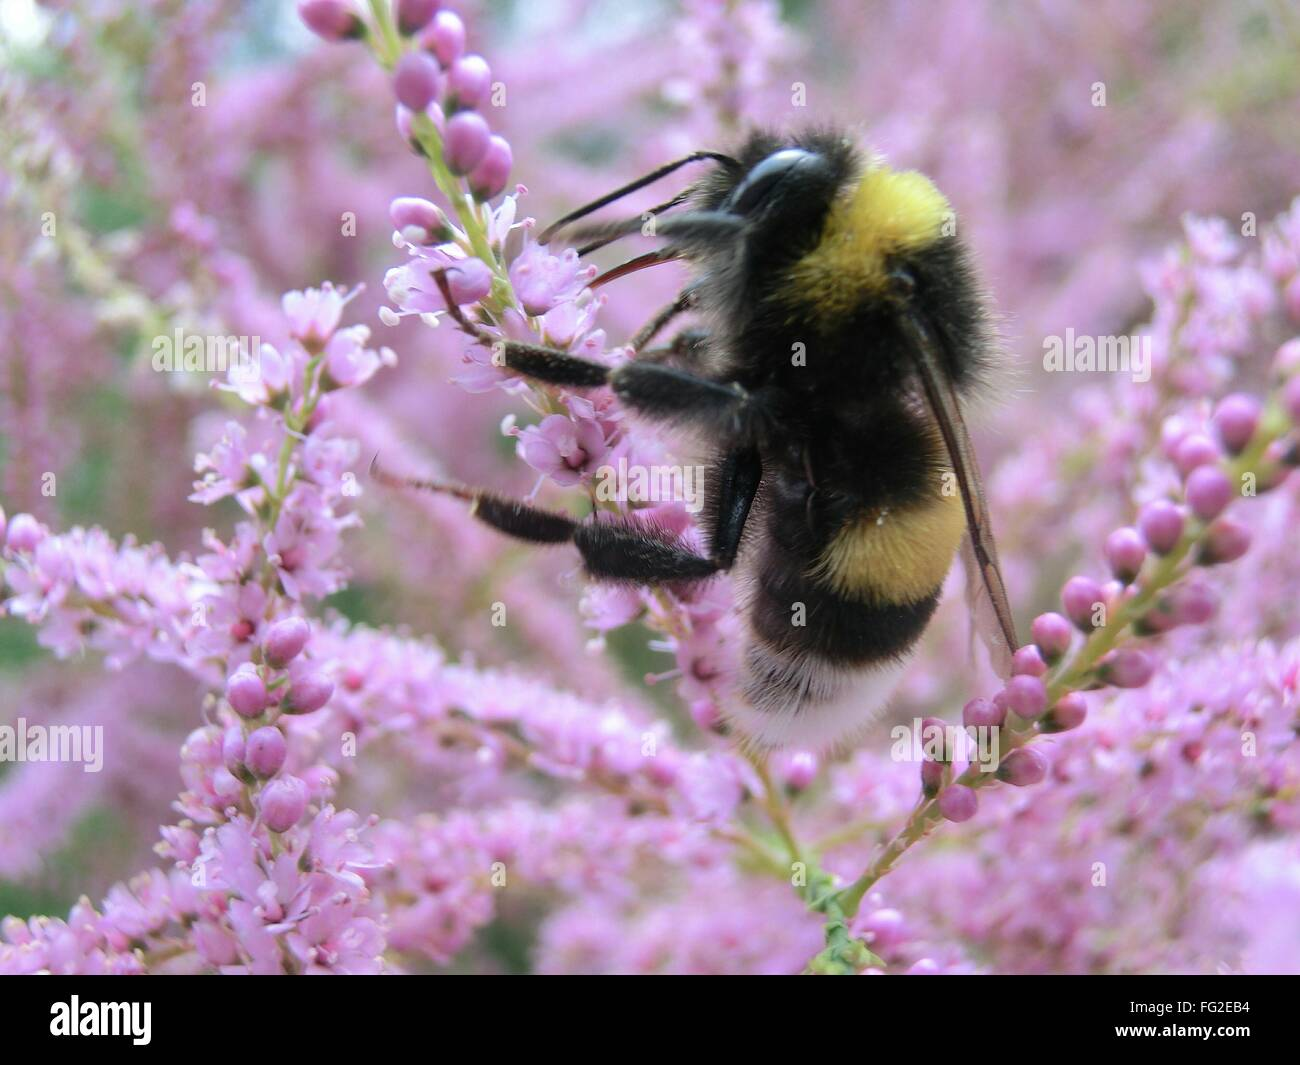 Close-Up Of Bee Pollinating Flower - Stock Image